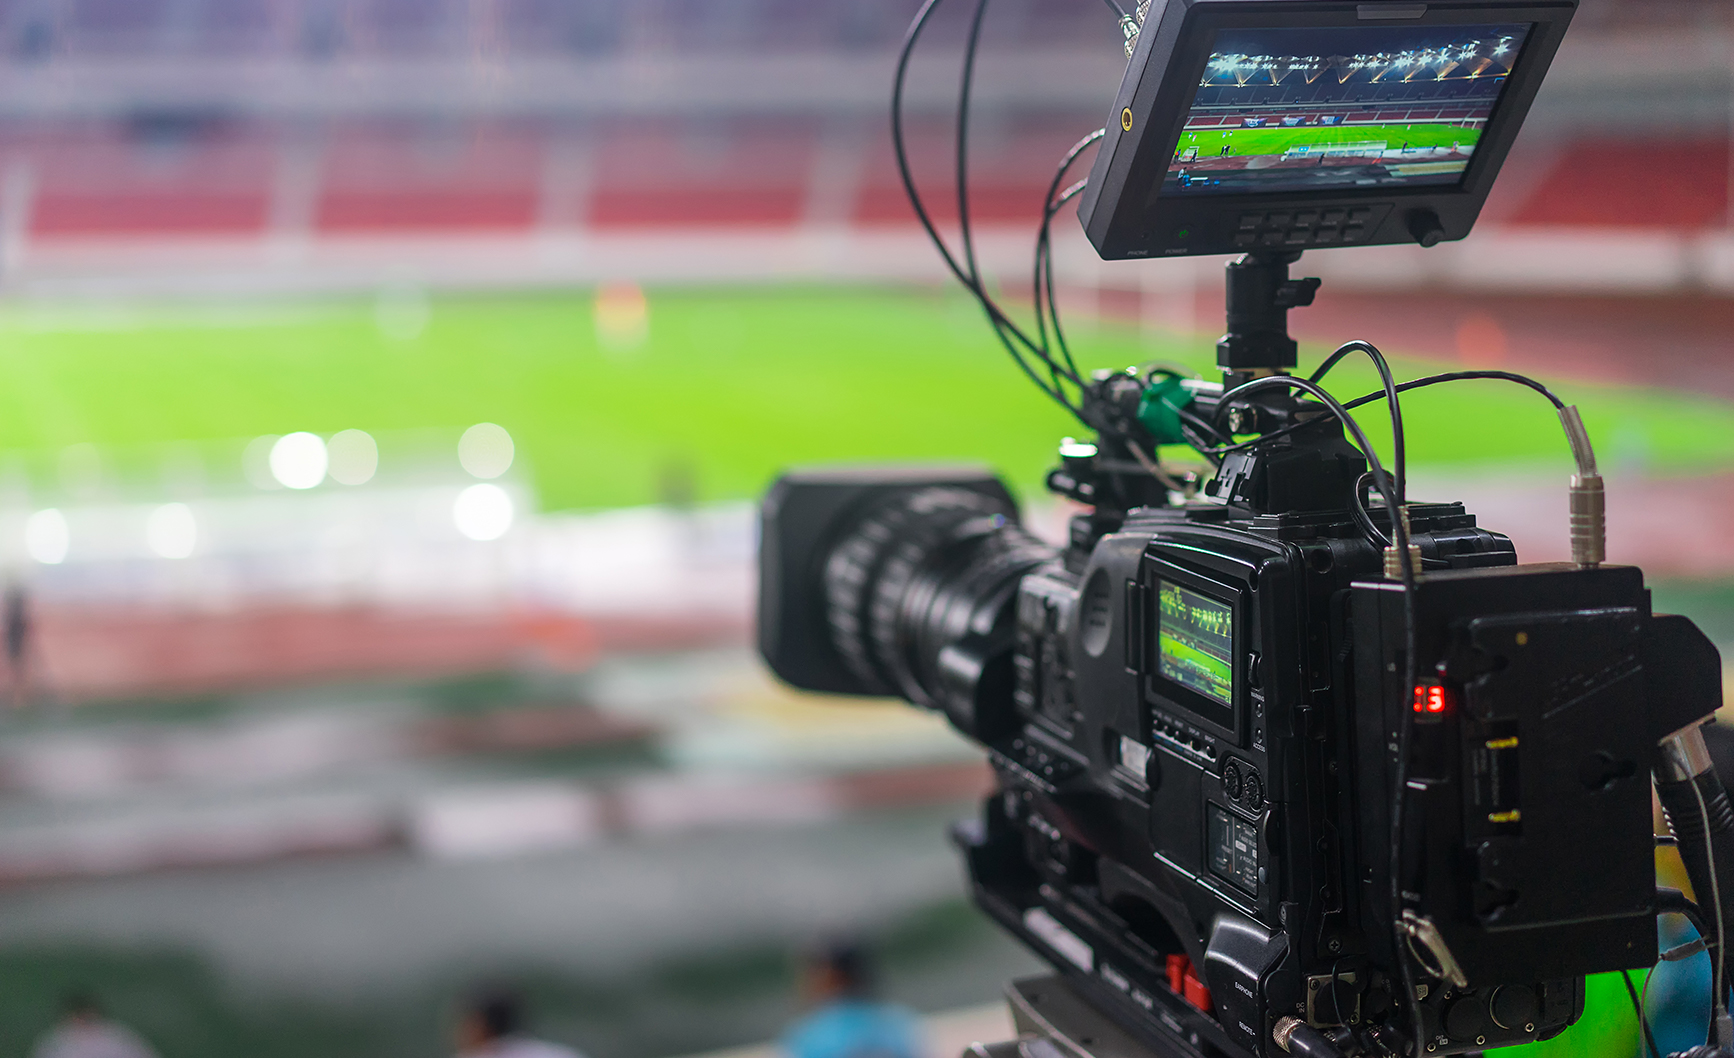 Case Study: Live Football Using 4G to Satellite